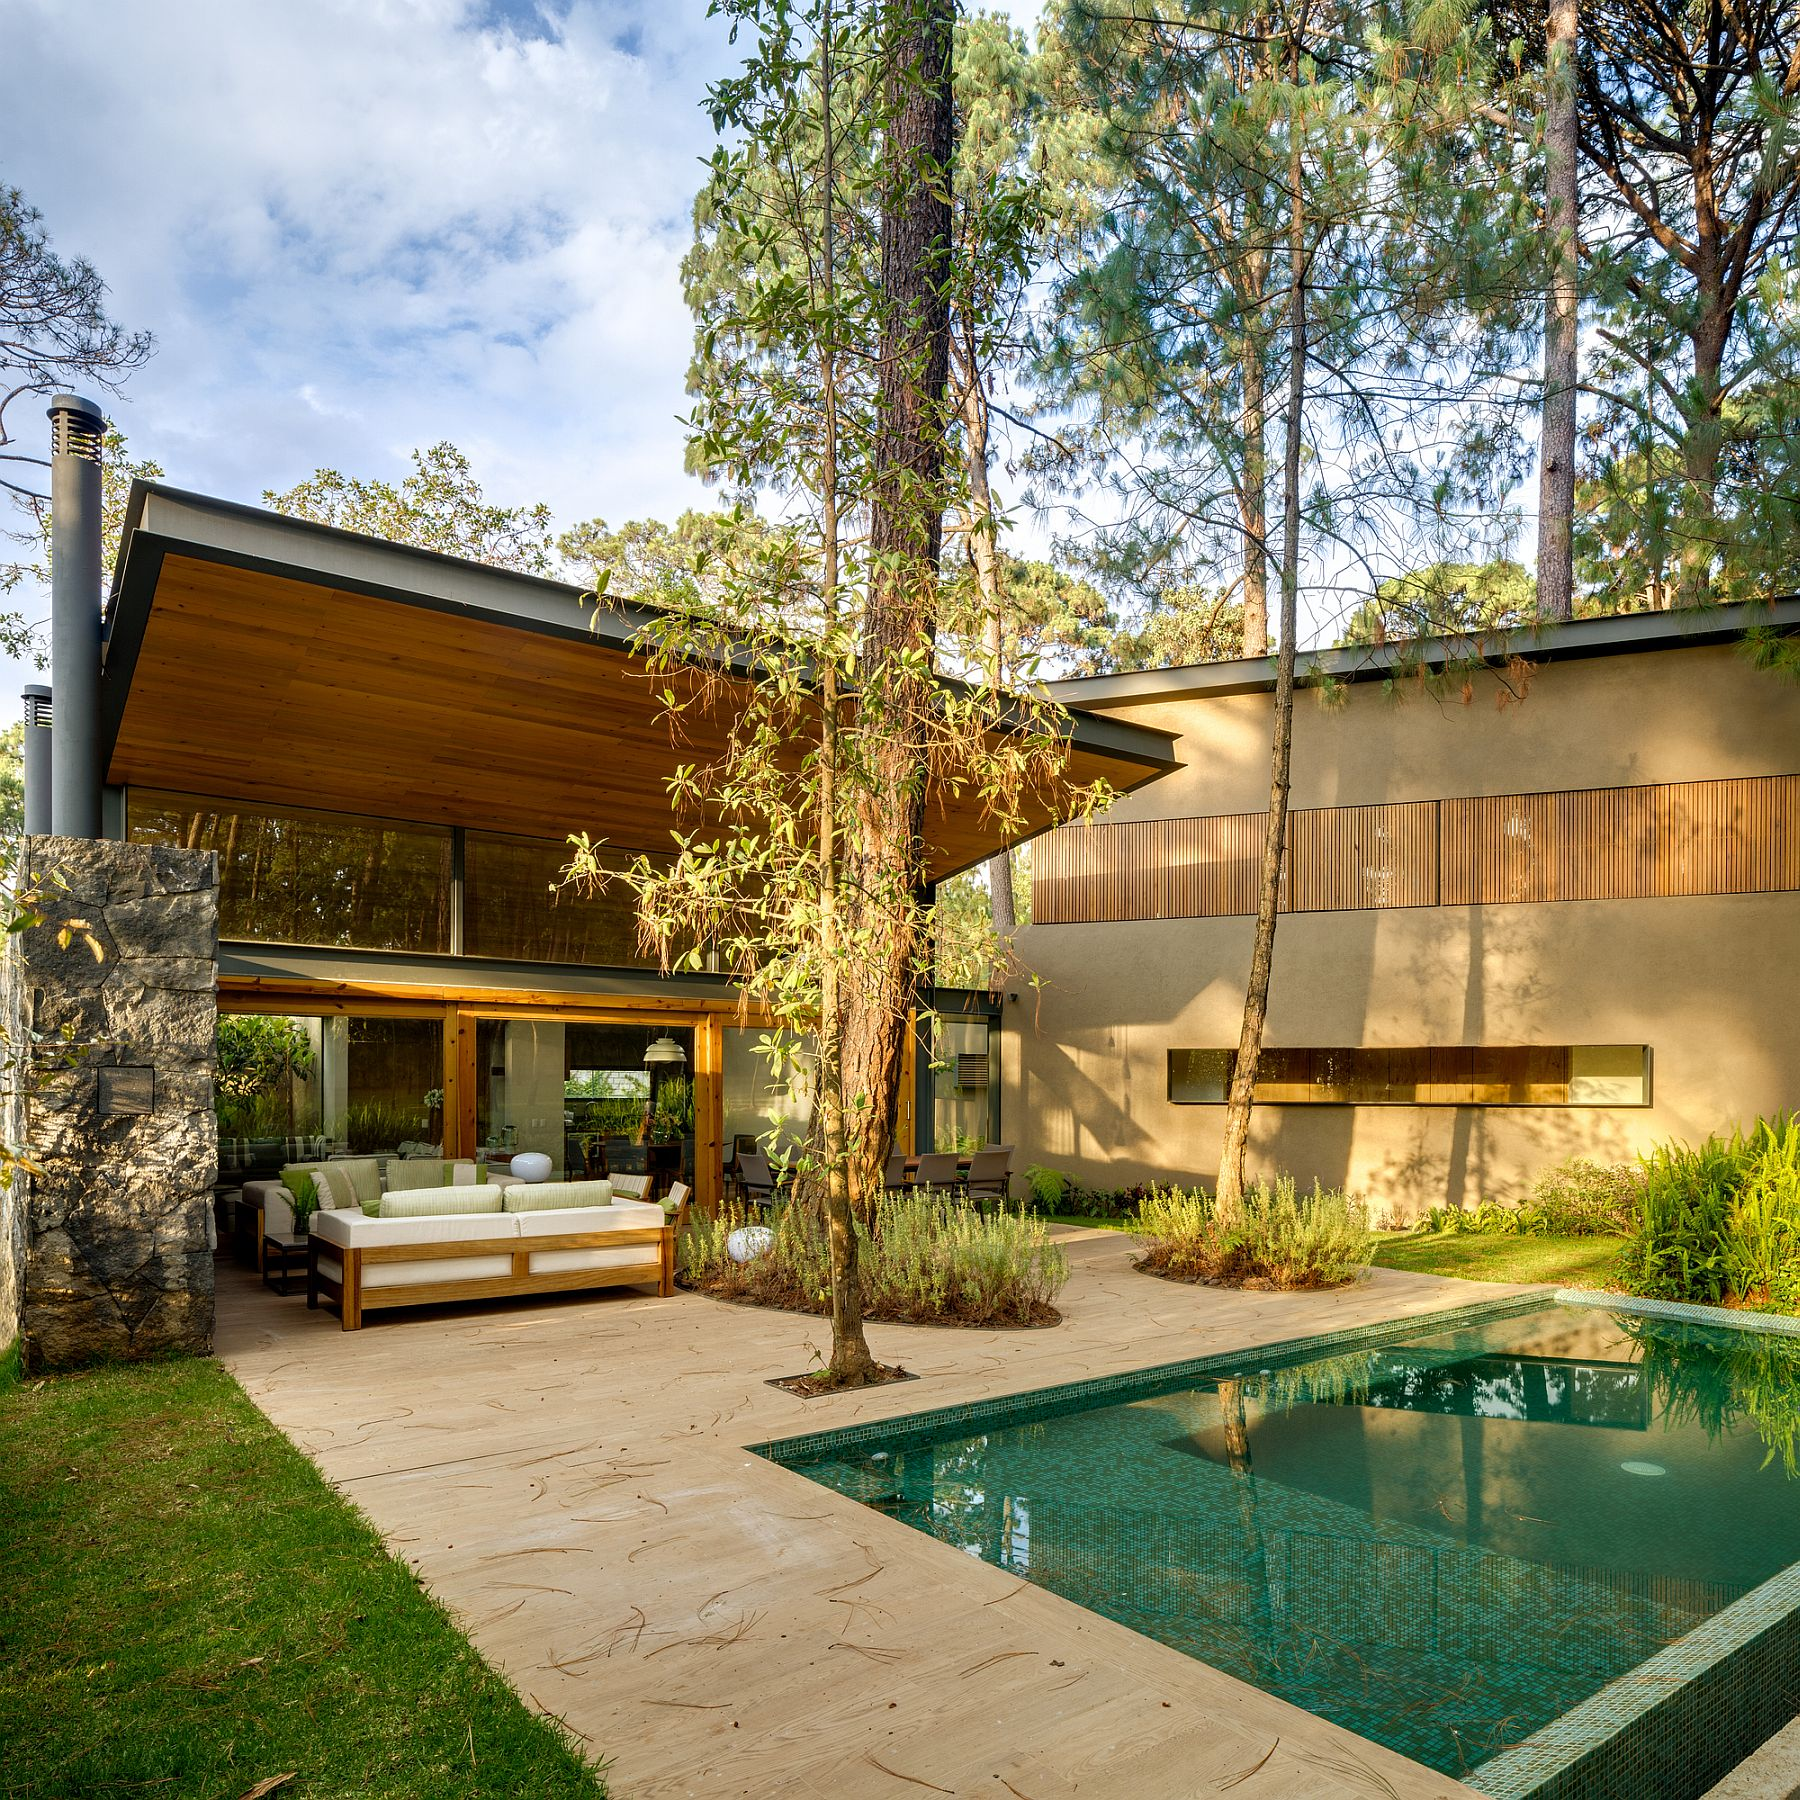 Nestled In Nature S Lap Five Houses Marries Luxury With